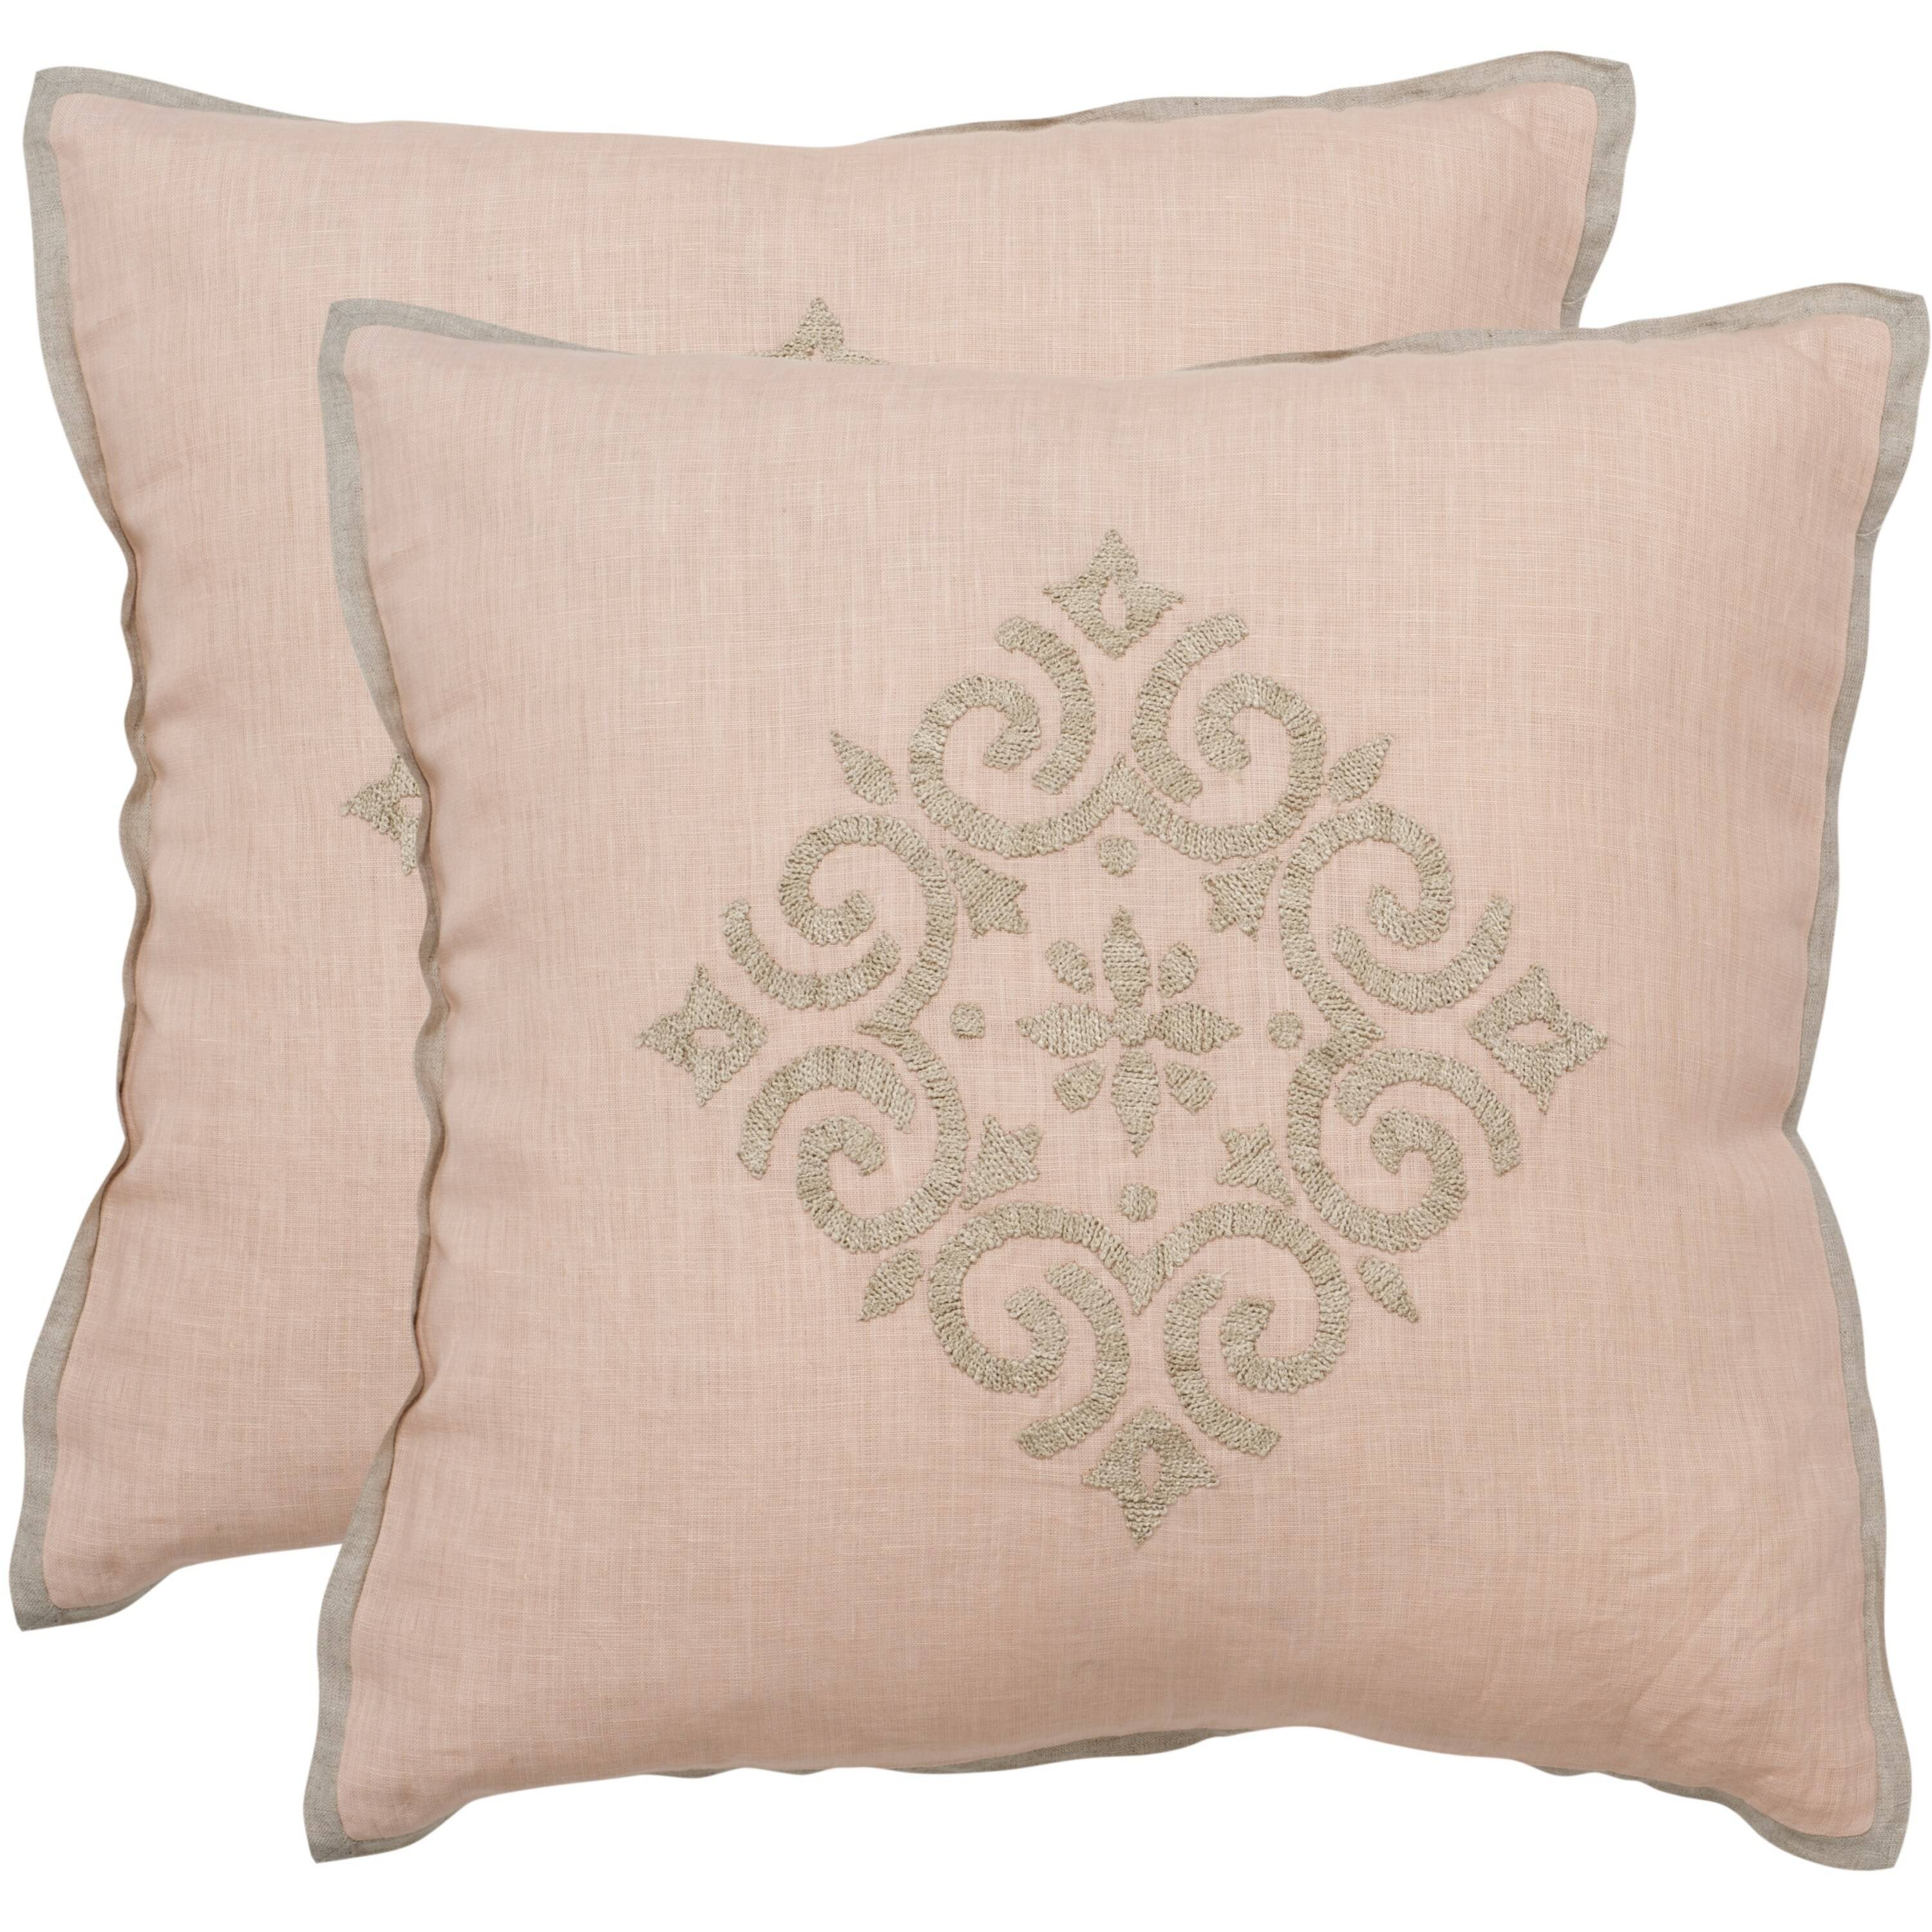 why is a pillow called a pillow